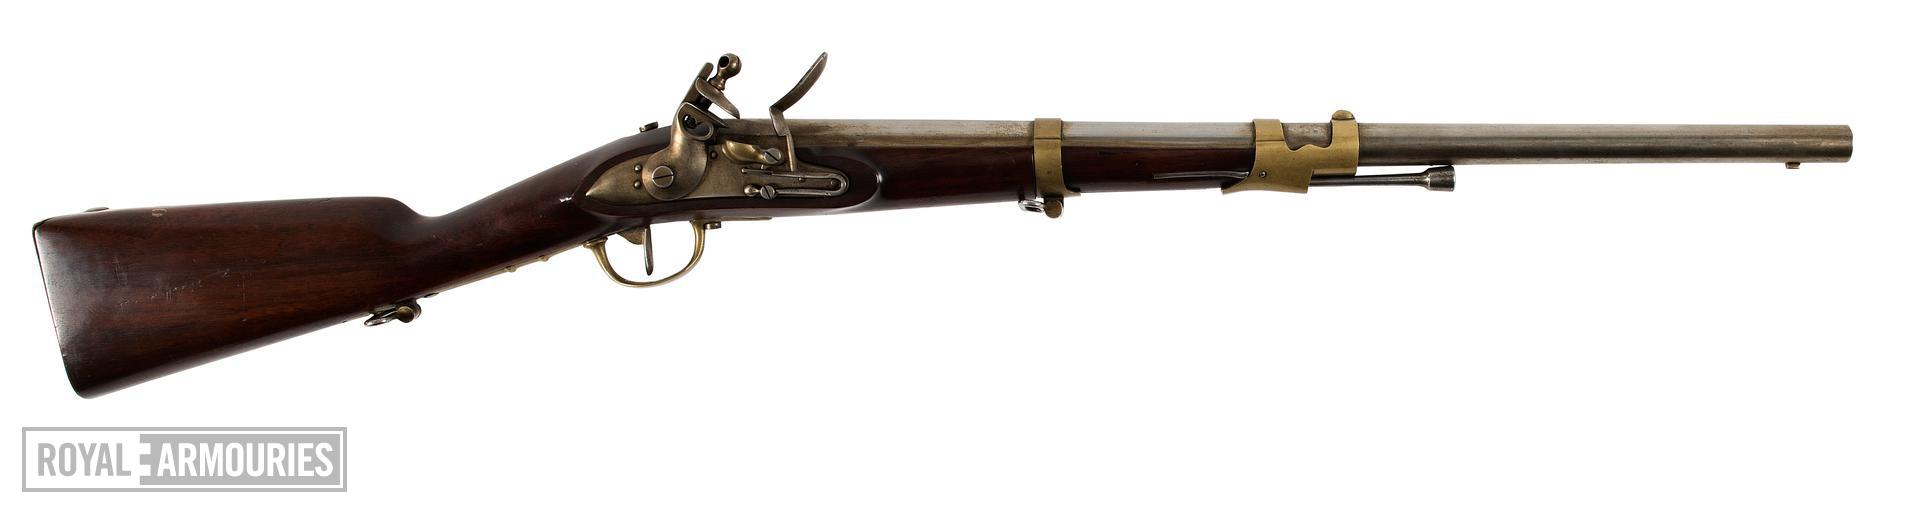 Flintlock muzzle-loading carbine - Cavalry Type Perhaps a An.IX Cavalry type? Perhaps a Mousqueton No.1 (Originally manufactured in Paris)?  This carbine was originally catologued as a Gendamerie model, however it has a cavalry sling bar on the back plate. The Gendamerie model did not have this feature.  The lock or the barrel feature none of the expected markings for a French carbine of the late 18th - early 19th century. It is therefore possible that this is either a foreign copy, or rushed French version of the carbine, manufactured in a hurry towards the end of the Revolutionary Period. This would make it pre An. IX (1800) and therfore more likely an ill manufactured revolutionary period Mousqueton No.1 .   This object will need futher research.LT 30/03/15.